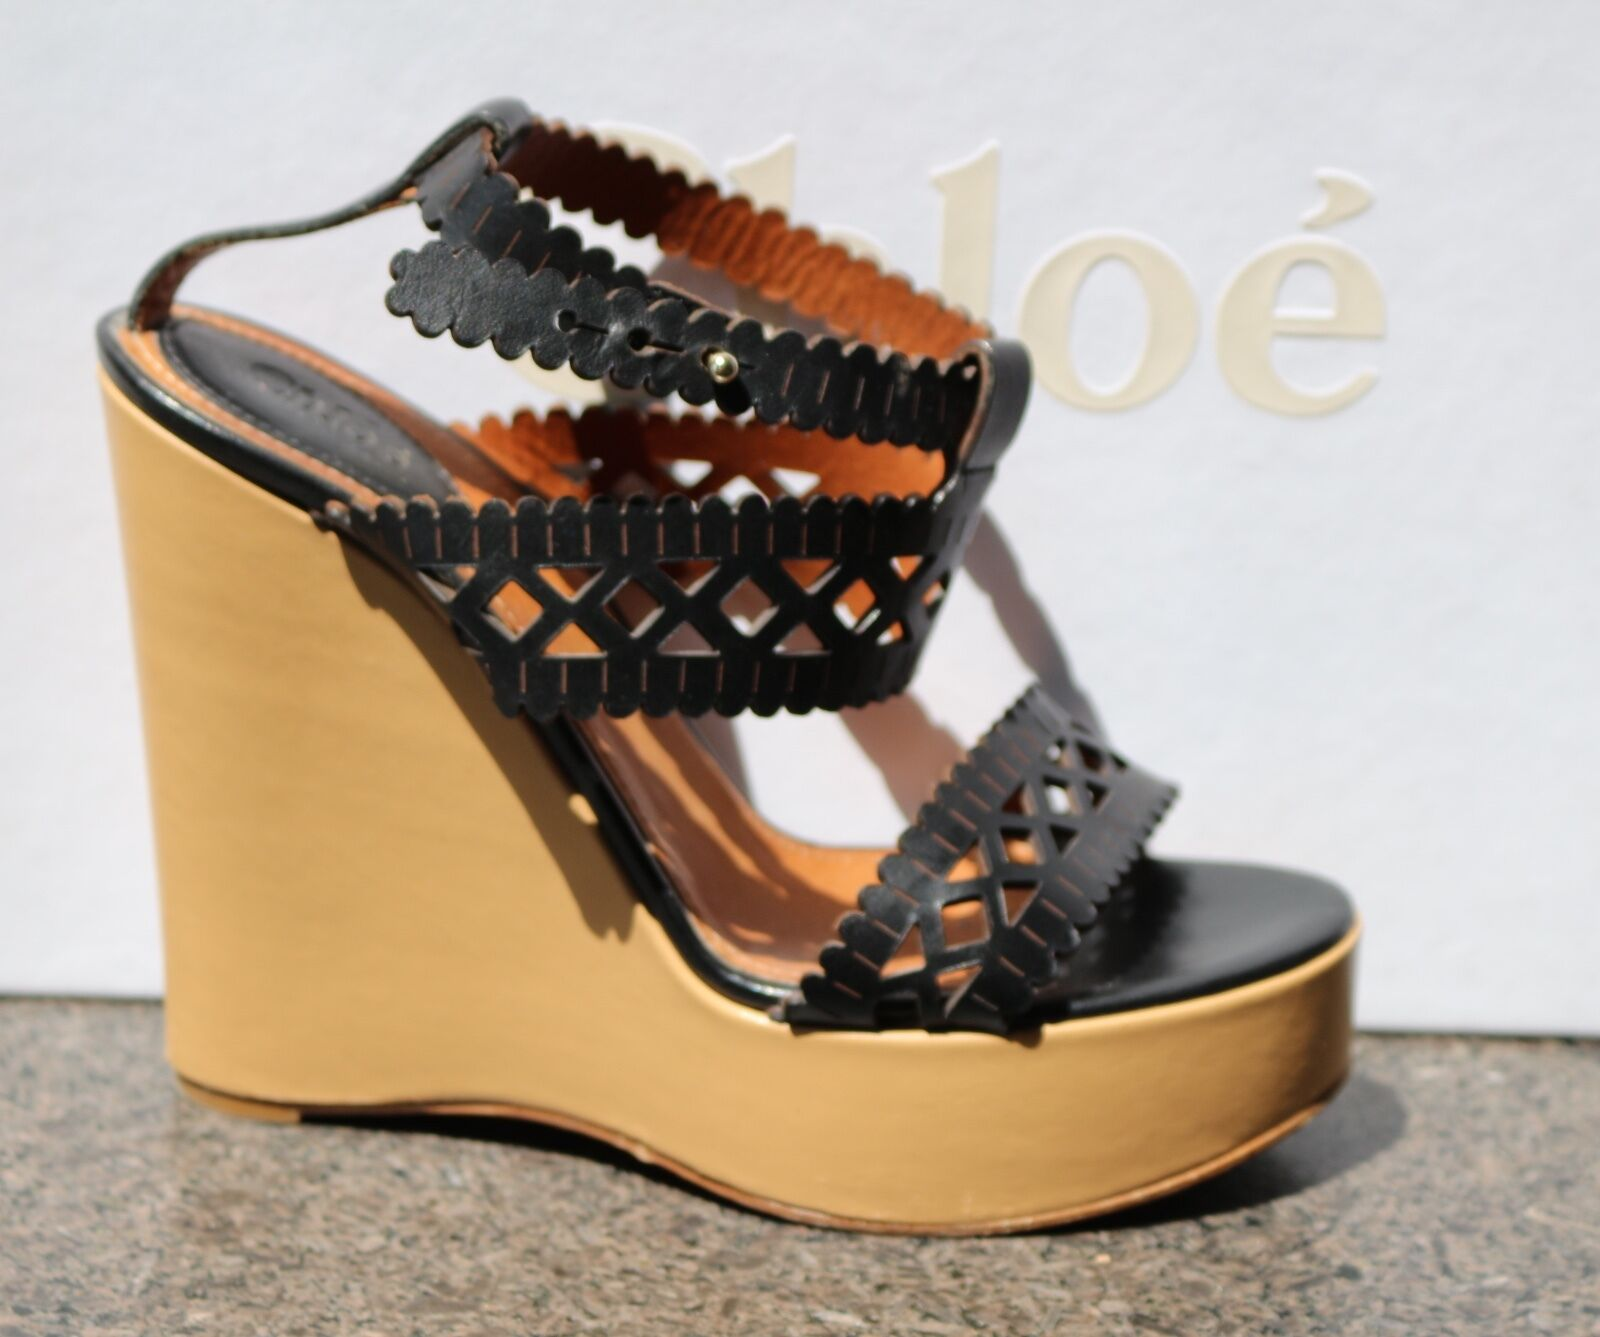 Gently Worn CHLOE Wedge Platform Two-Tone Strap Sandals shoes 40.5 (Fits US 9.5)